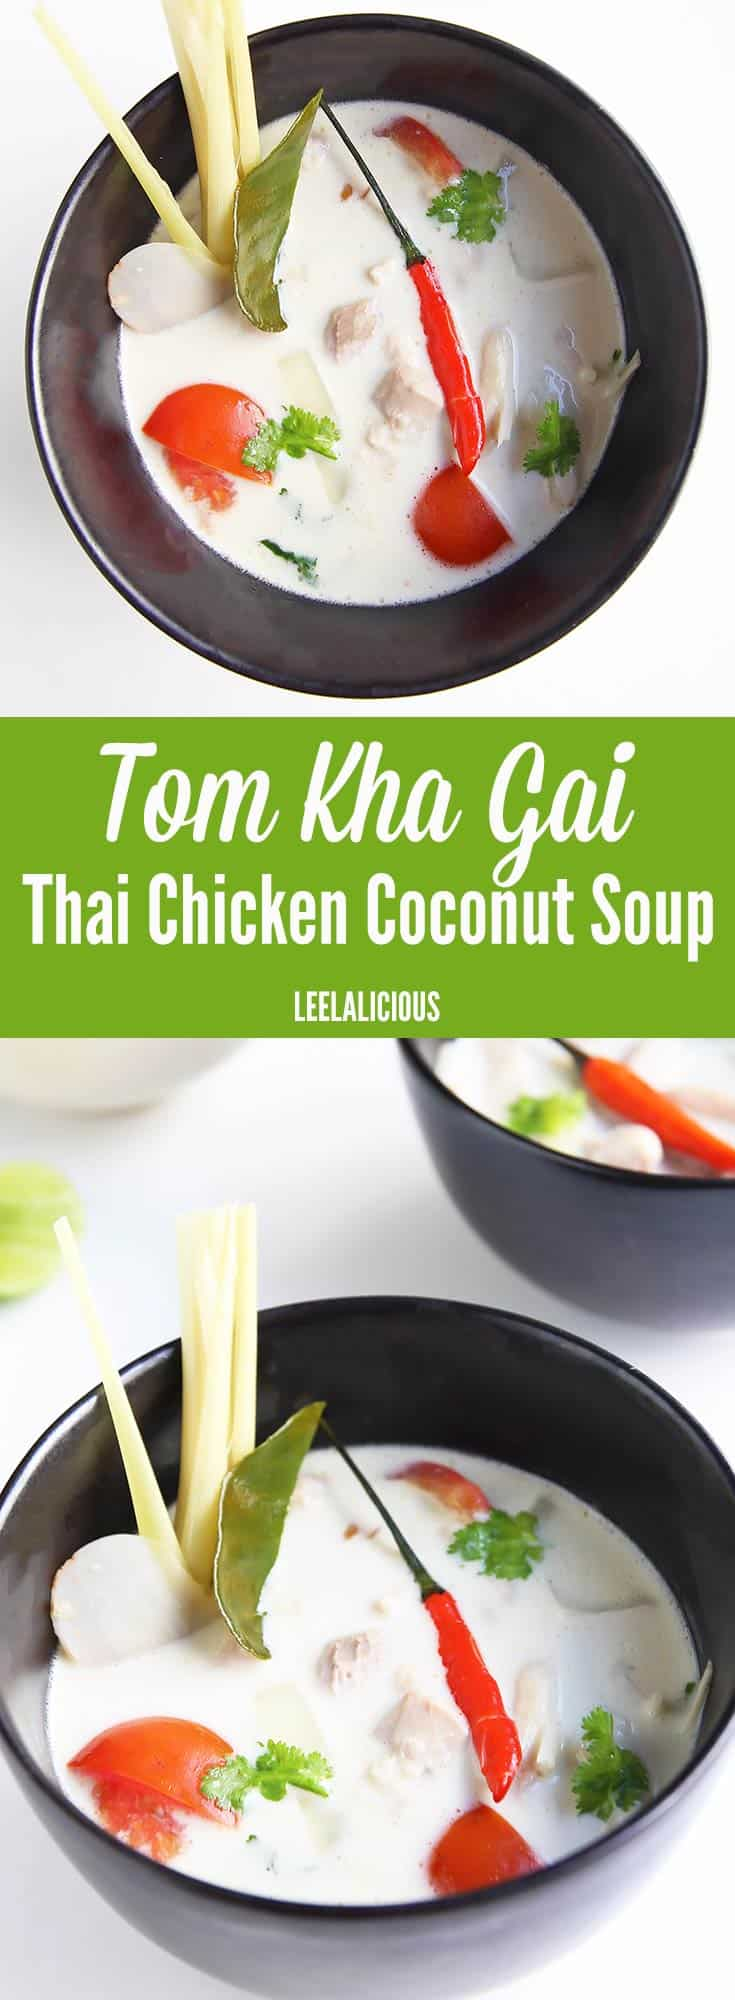 Tom Kha Gai - Thai Chicken Coconut Soup is one of the most popular ...